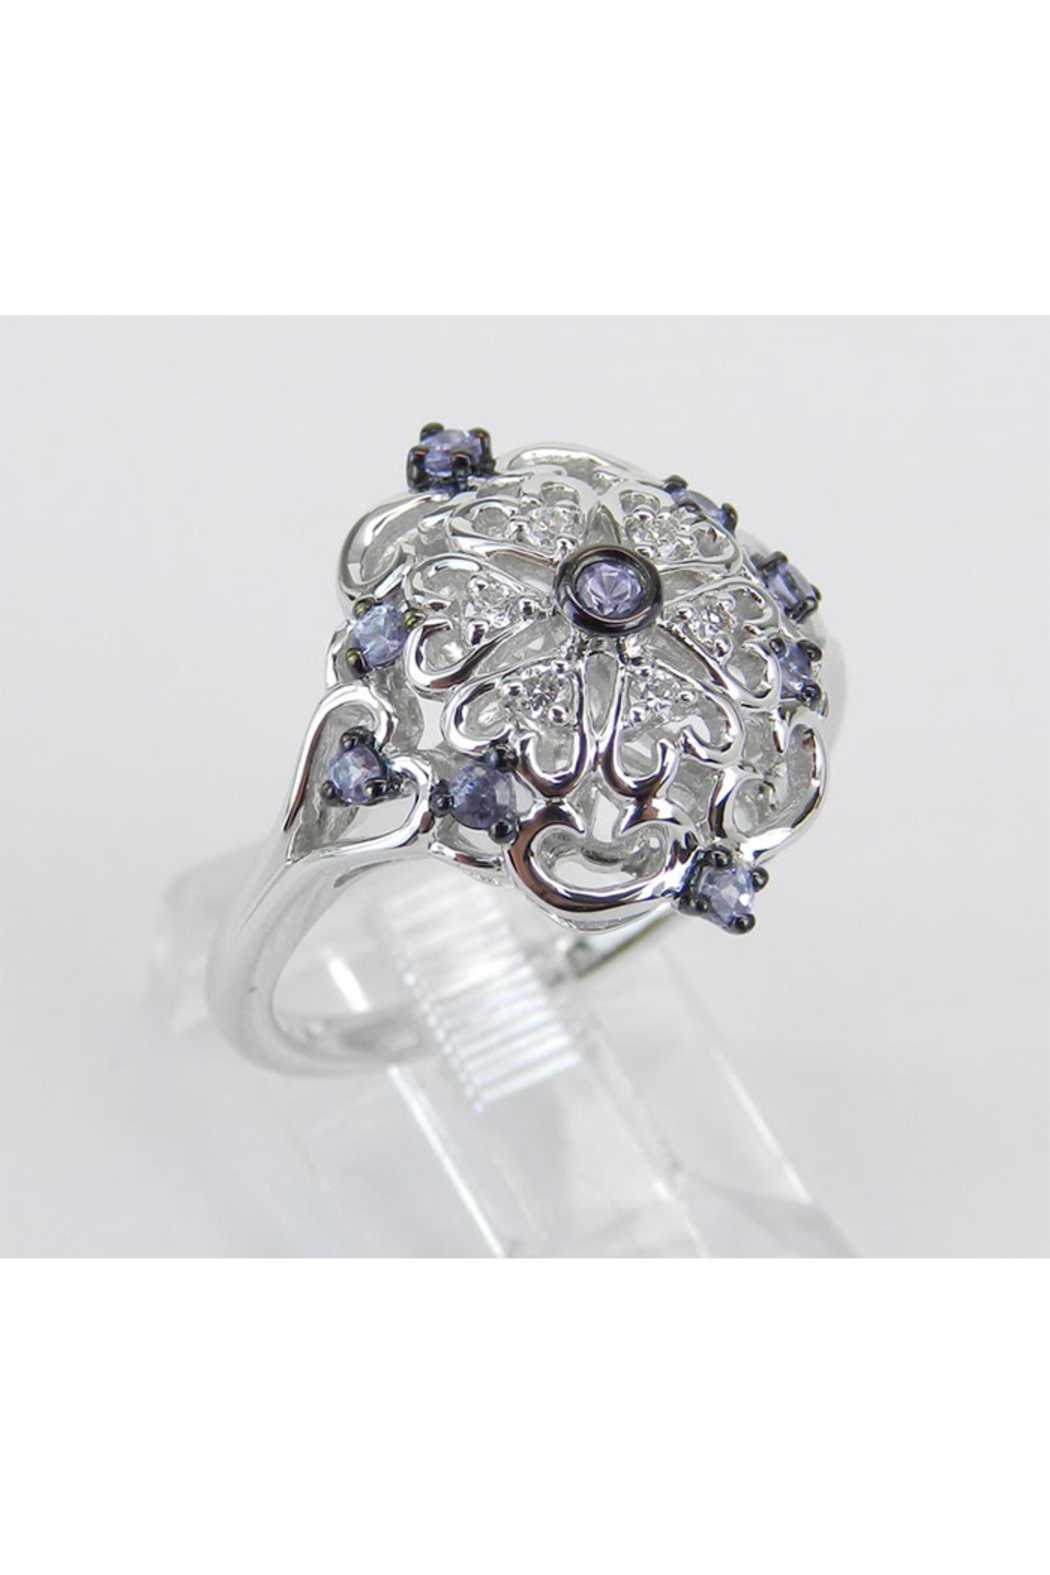 Margolin & Co Vintage Reproduction Style White Gold Diamond and Tanzanite Cocktail Cluster Ring Size 6.75 FREE Sizing - Front Full Image